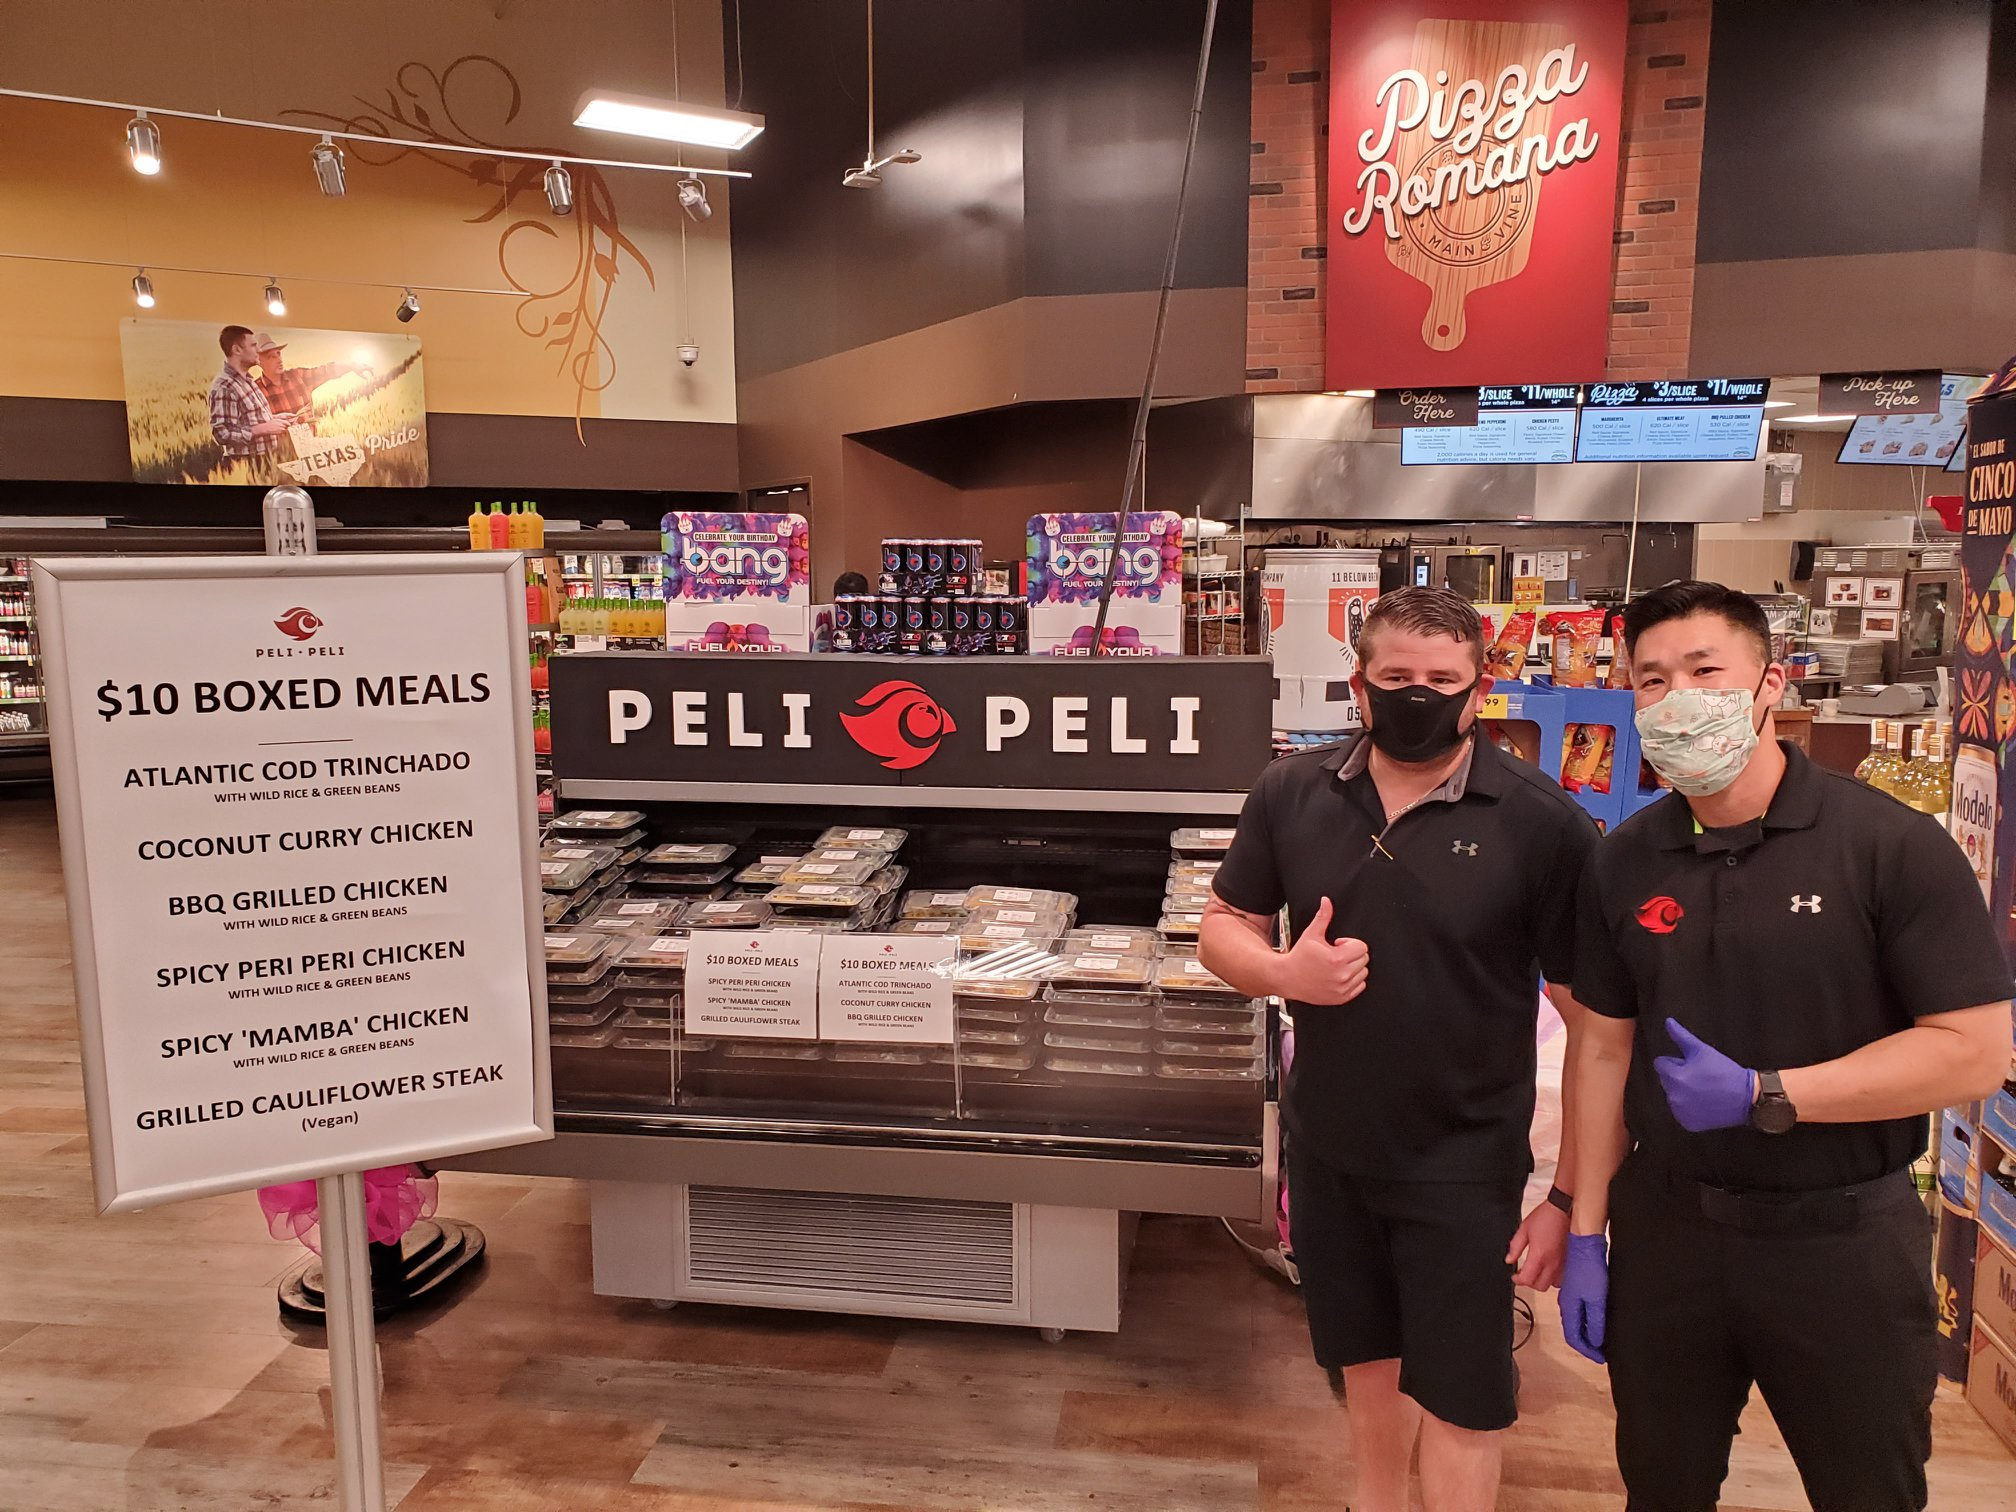 Peli Peli's Thomas Nguyen checks the restaurant's pop-up display at Kroger